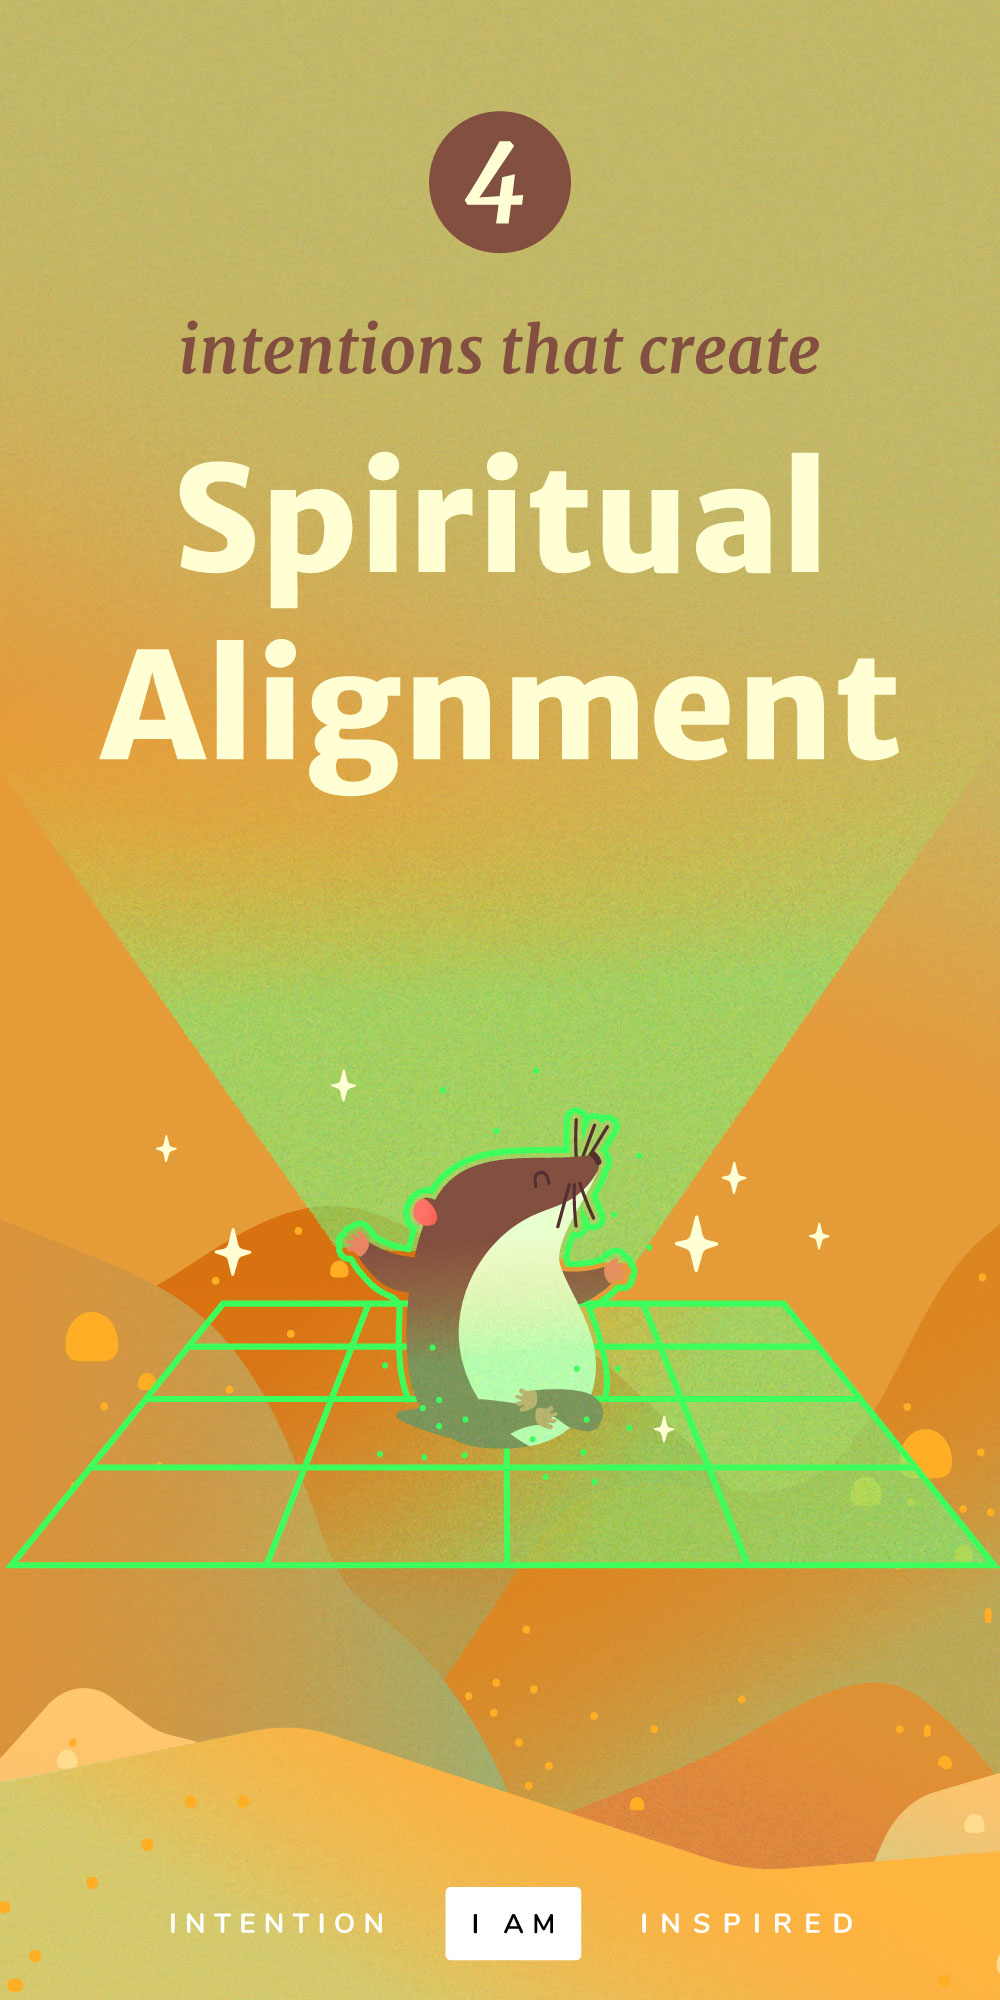 intentions that create spiritual alignment